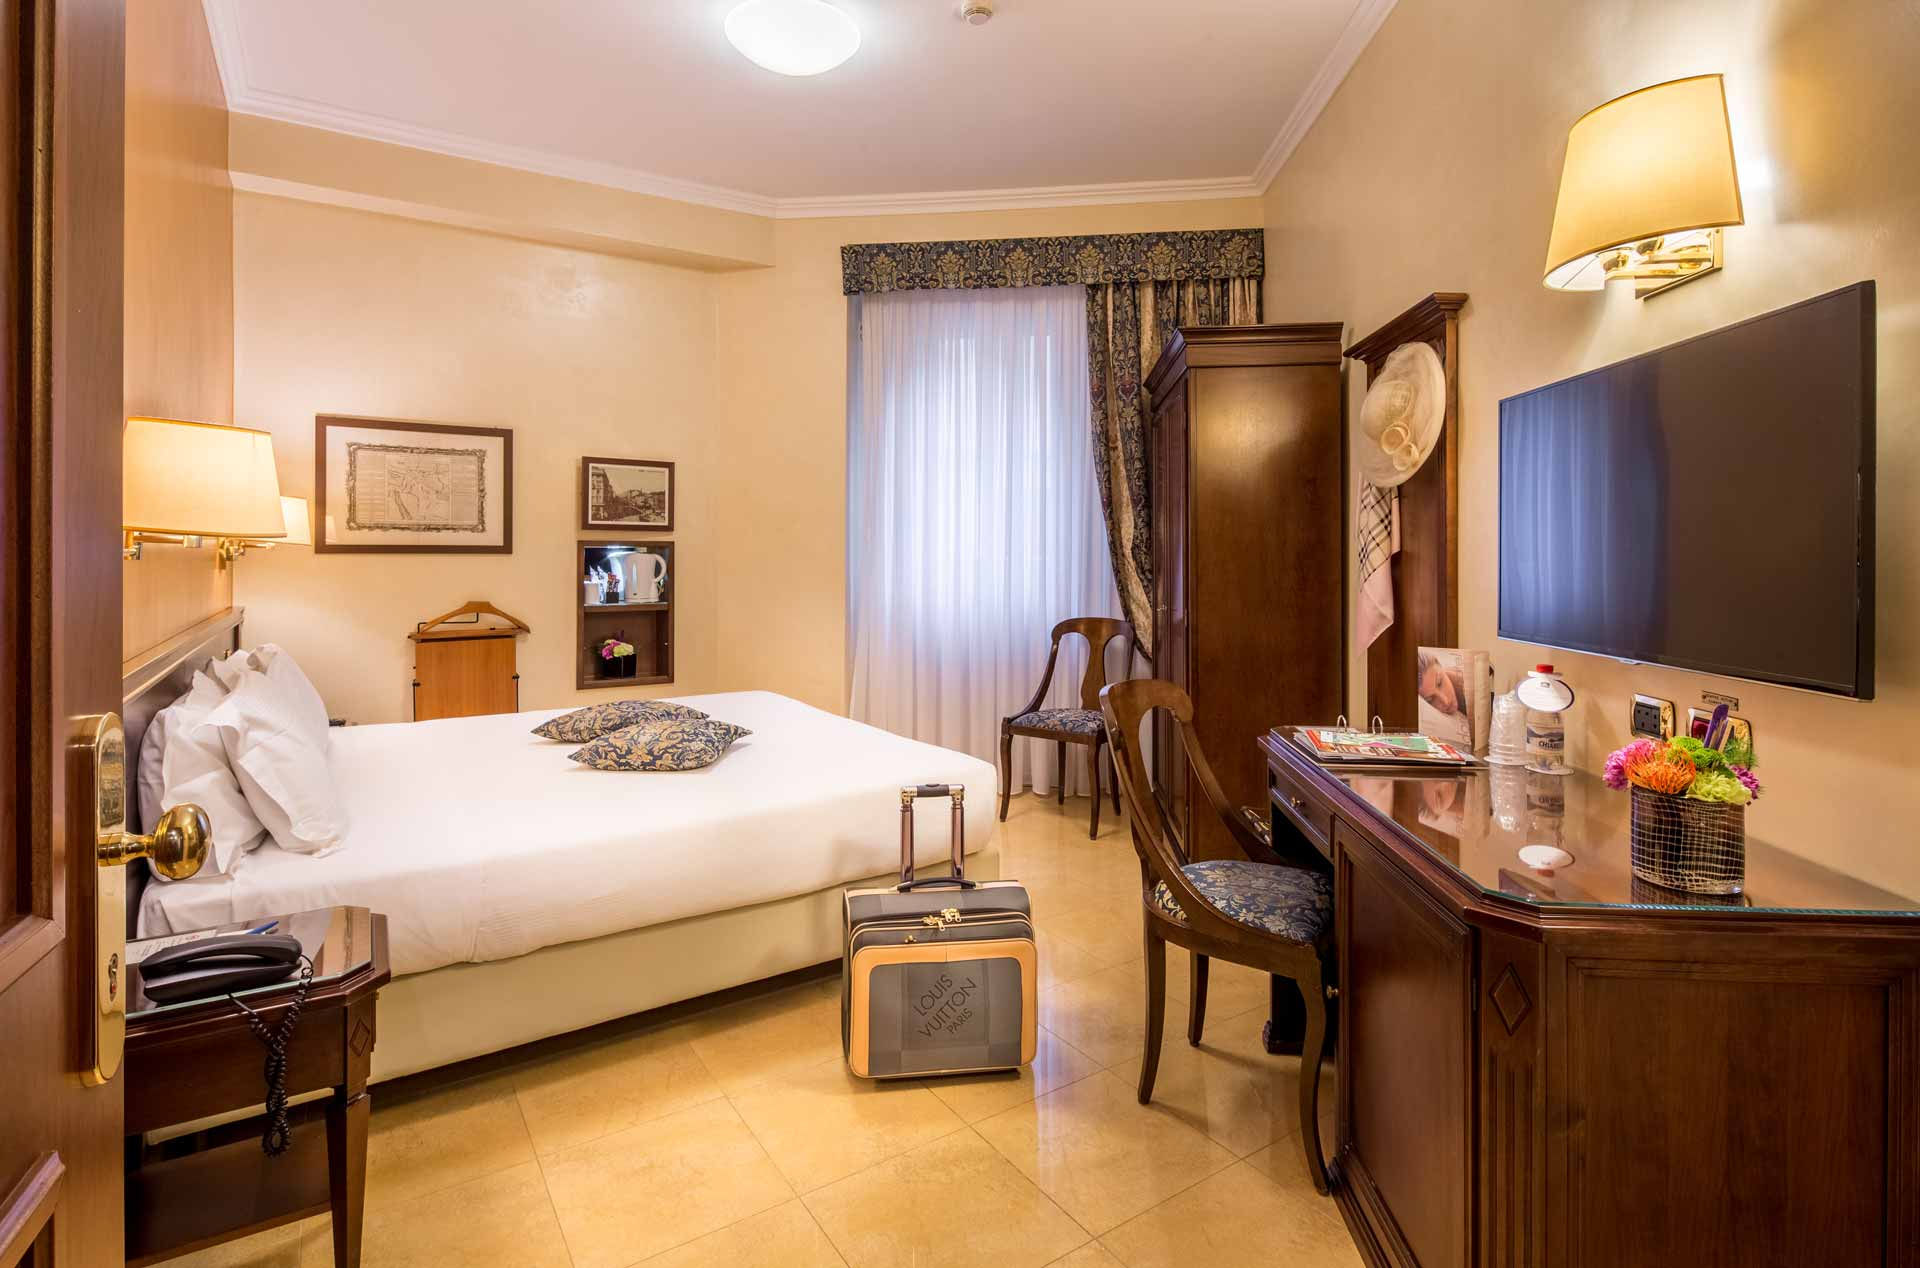 Camere classic hotel galles best western plus milano - Hotel con camere a tema milano ...